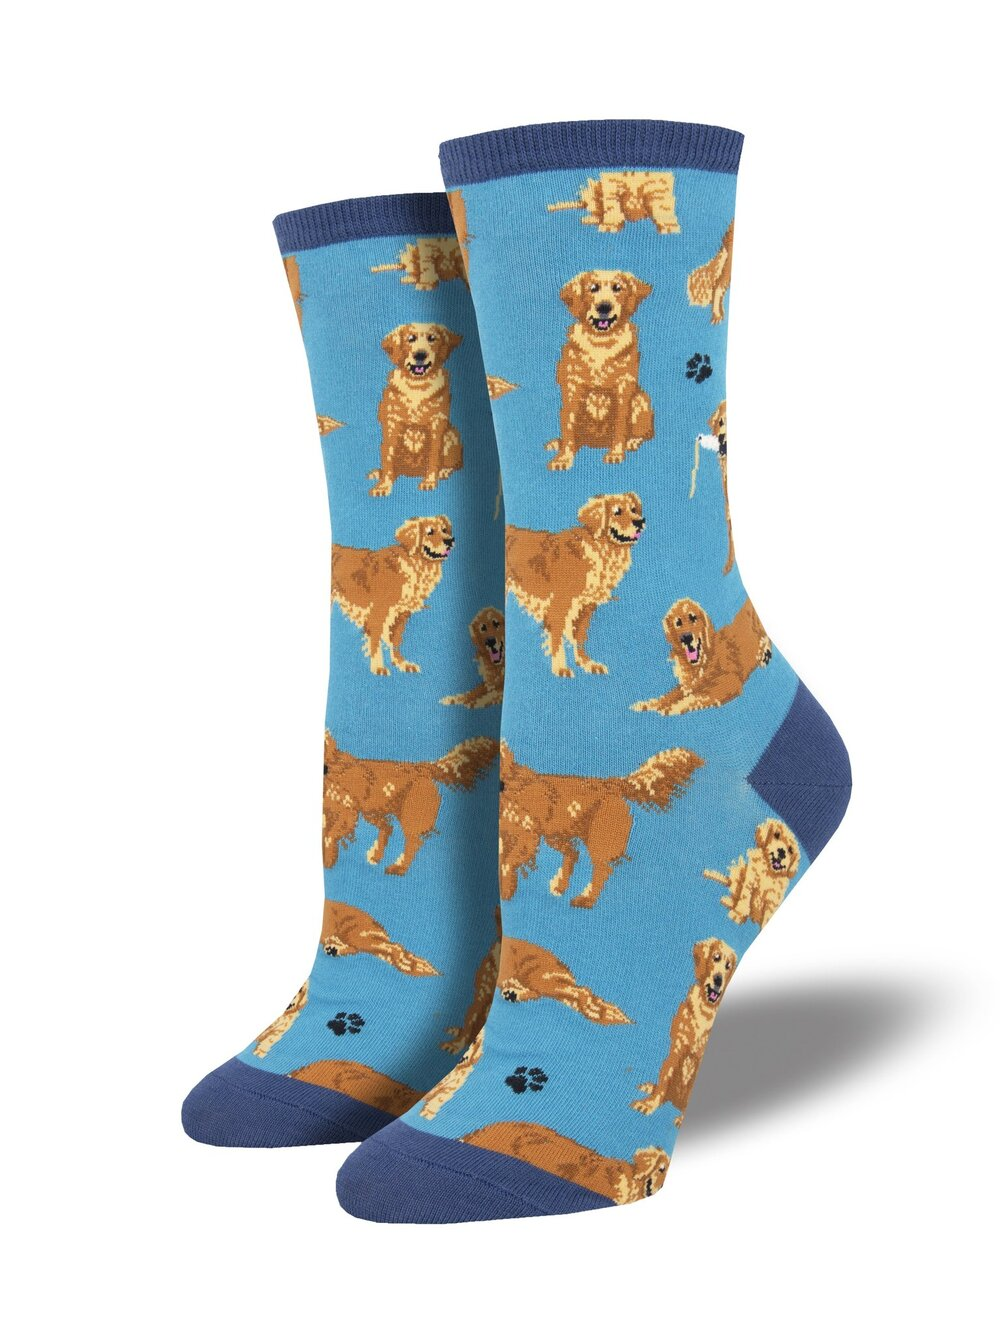 Socksmith 'Golden Retrievers' Blue Womens Socks